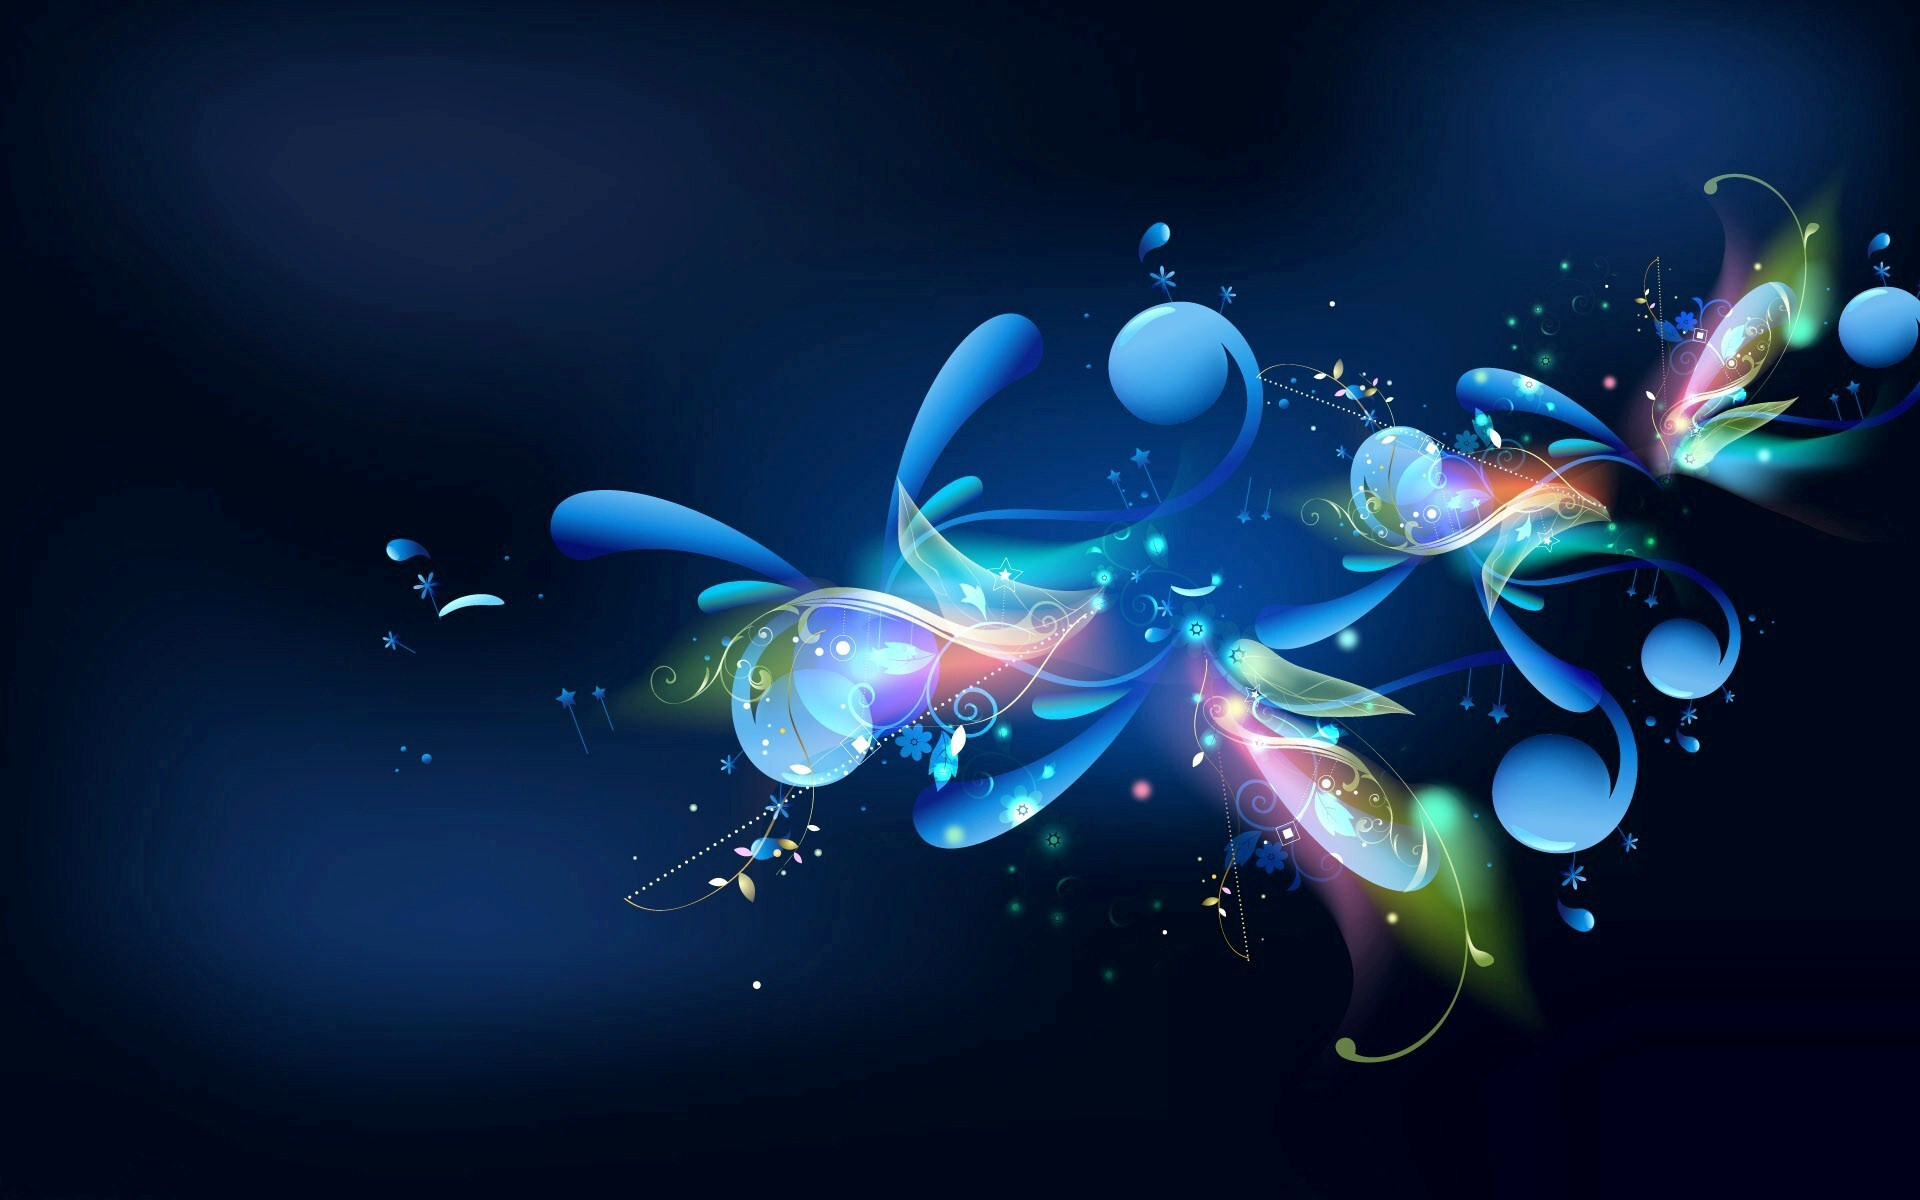 Beautiful Blue Designs Background Wallpapers | HD Wallpapers